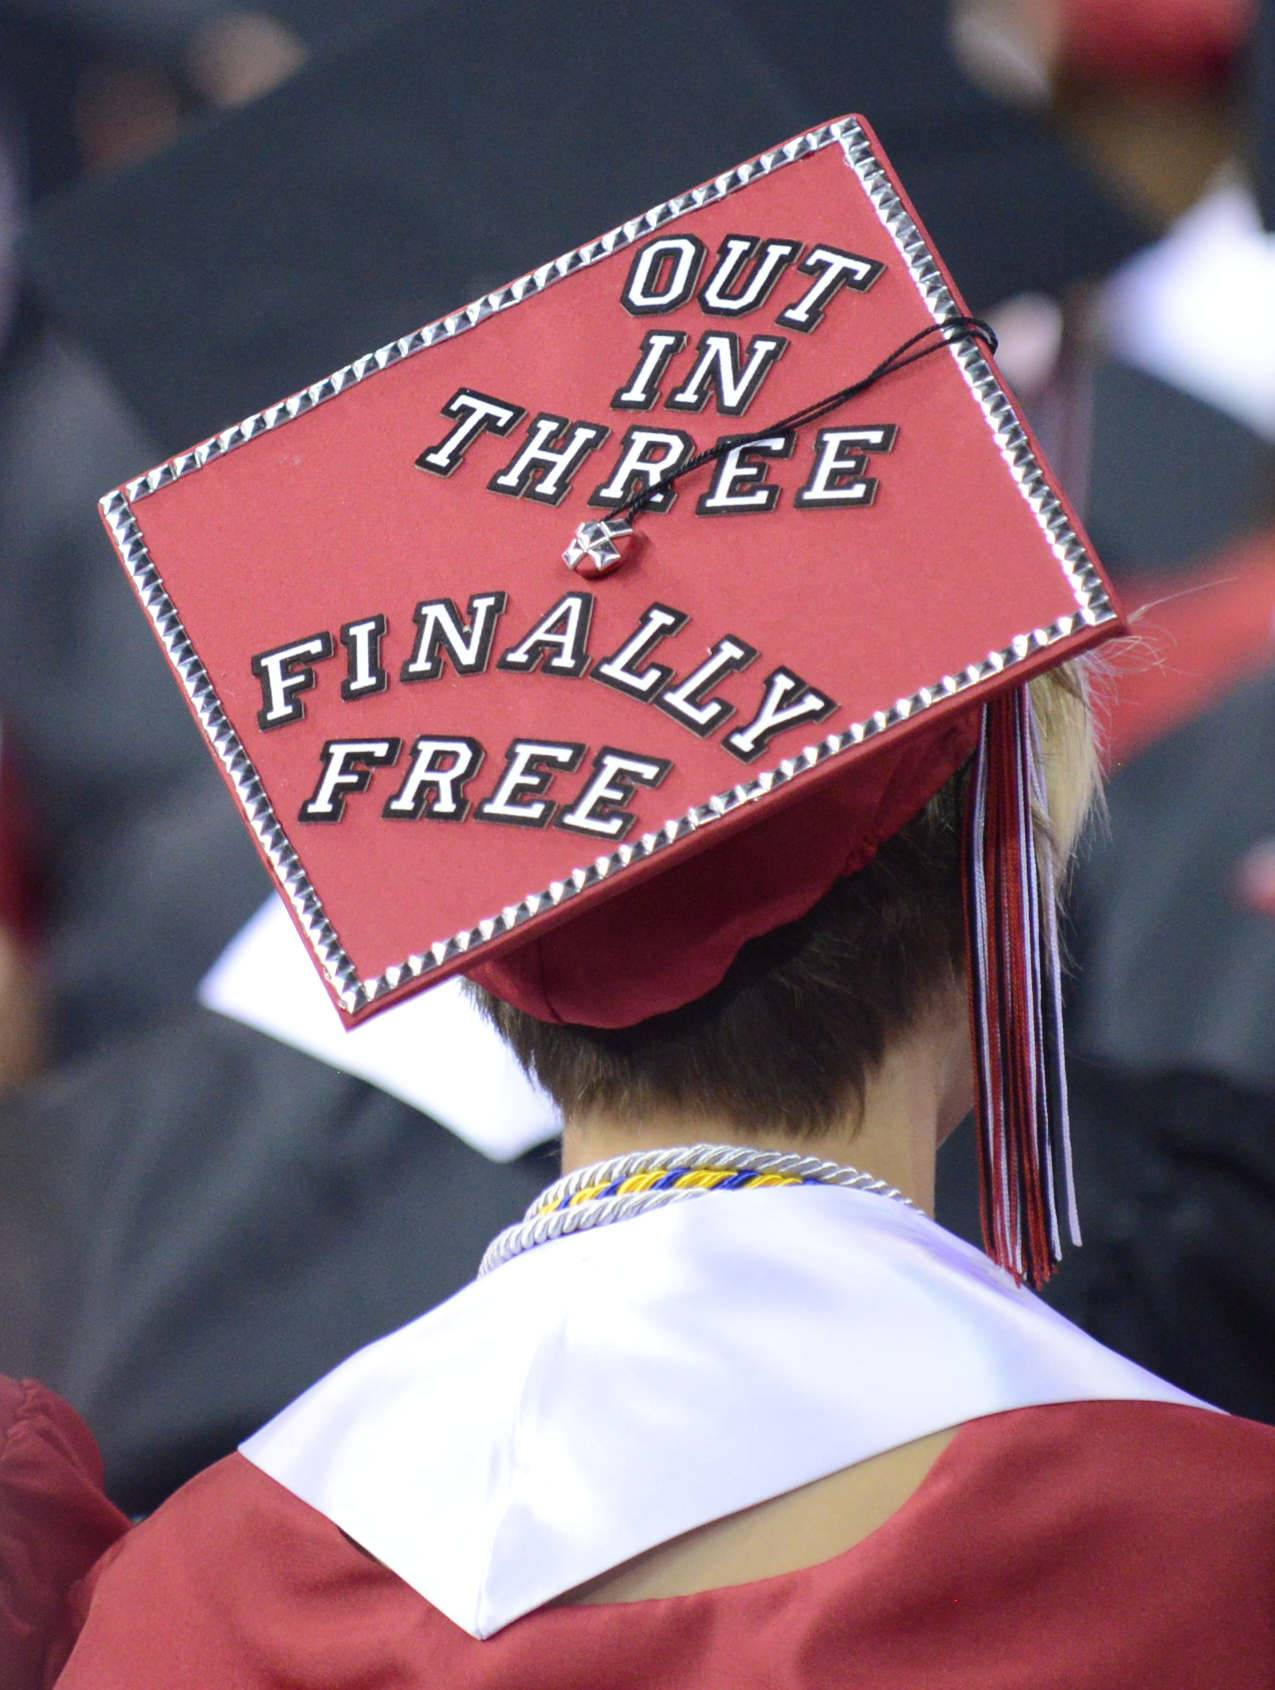 Images from the Huntley High School graduation ceremony on Saturday, May 31st, at the Sears Centre in Hoffman Estates.